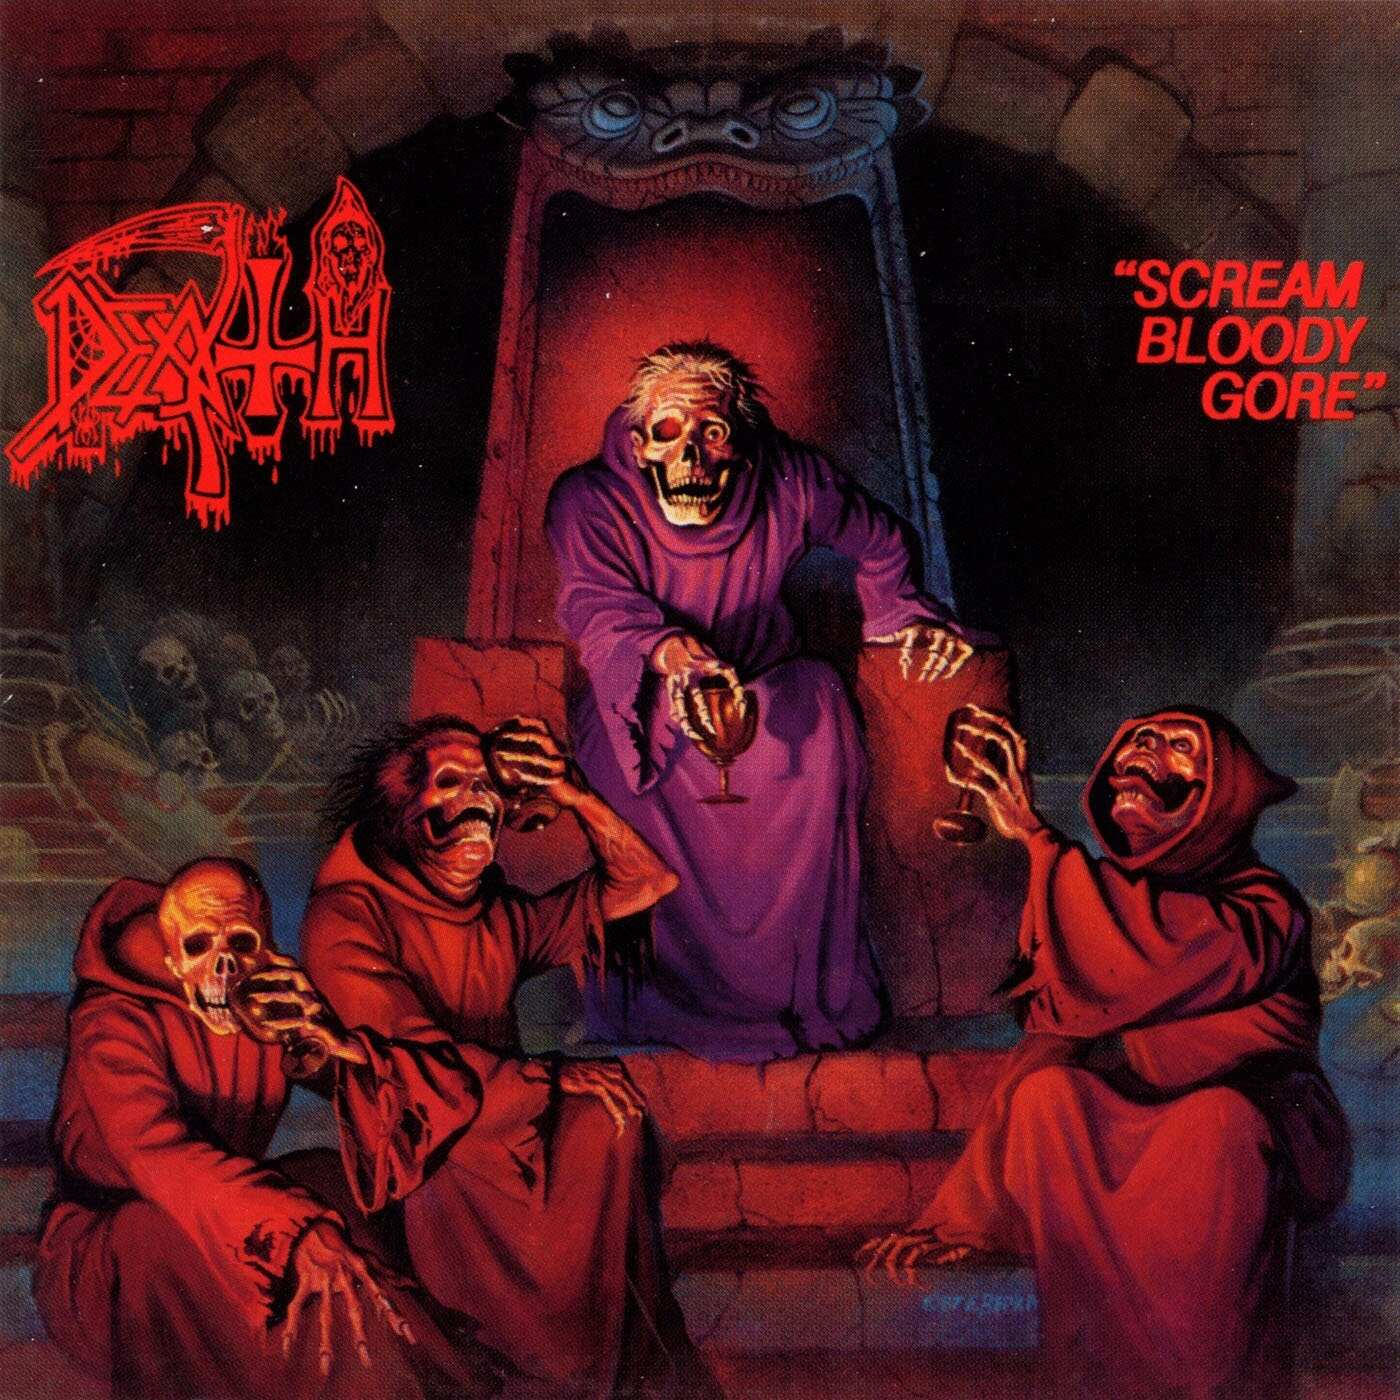 Scream Bloody Gore cover (Click to see larger picture)